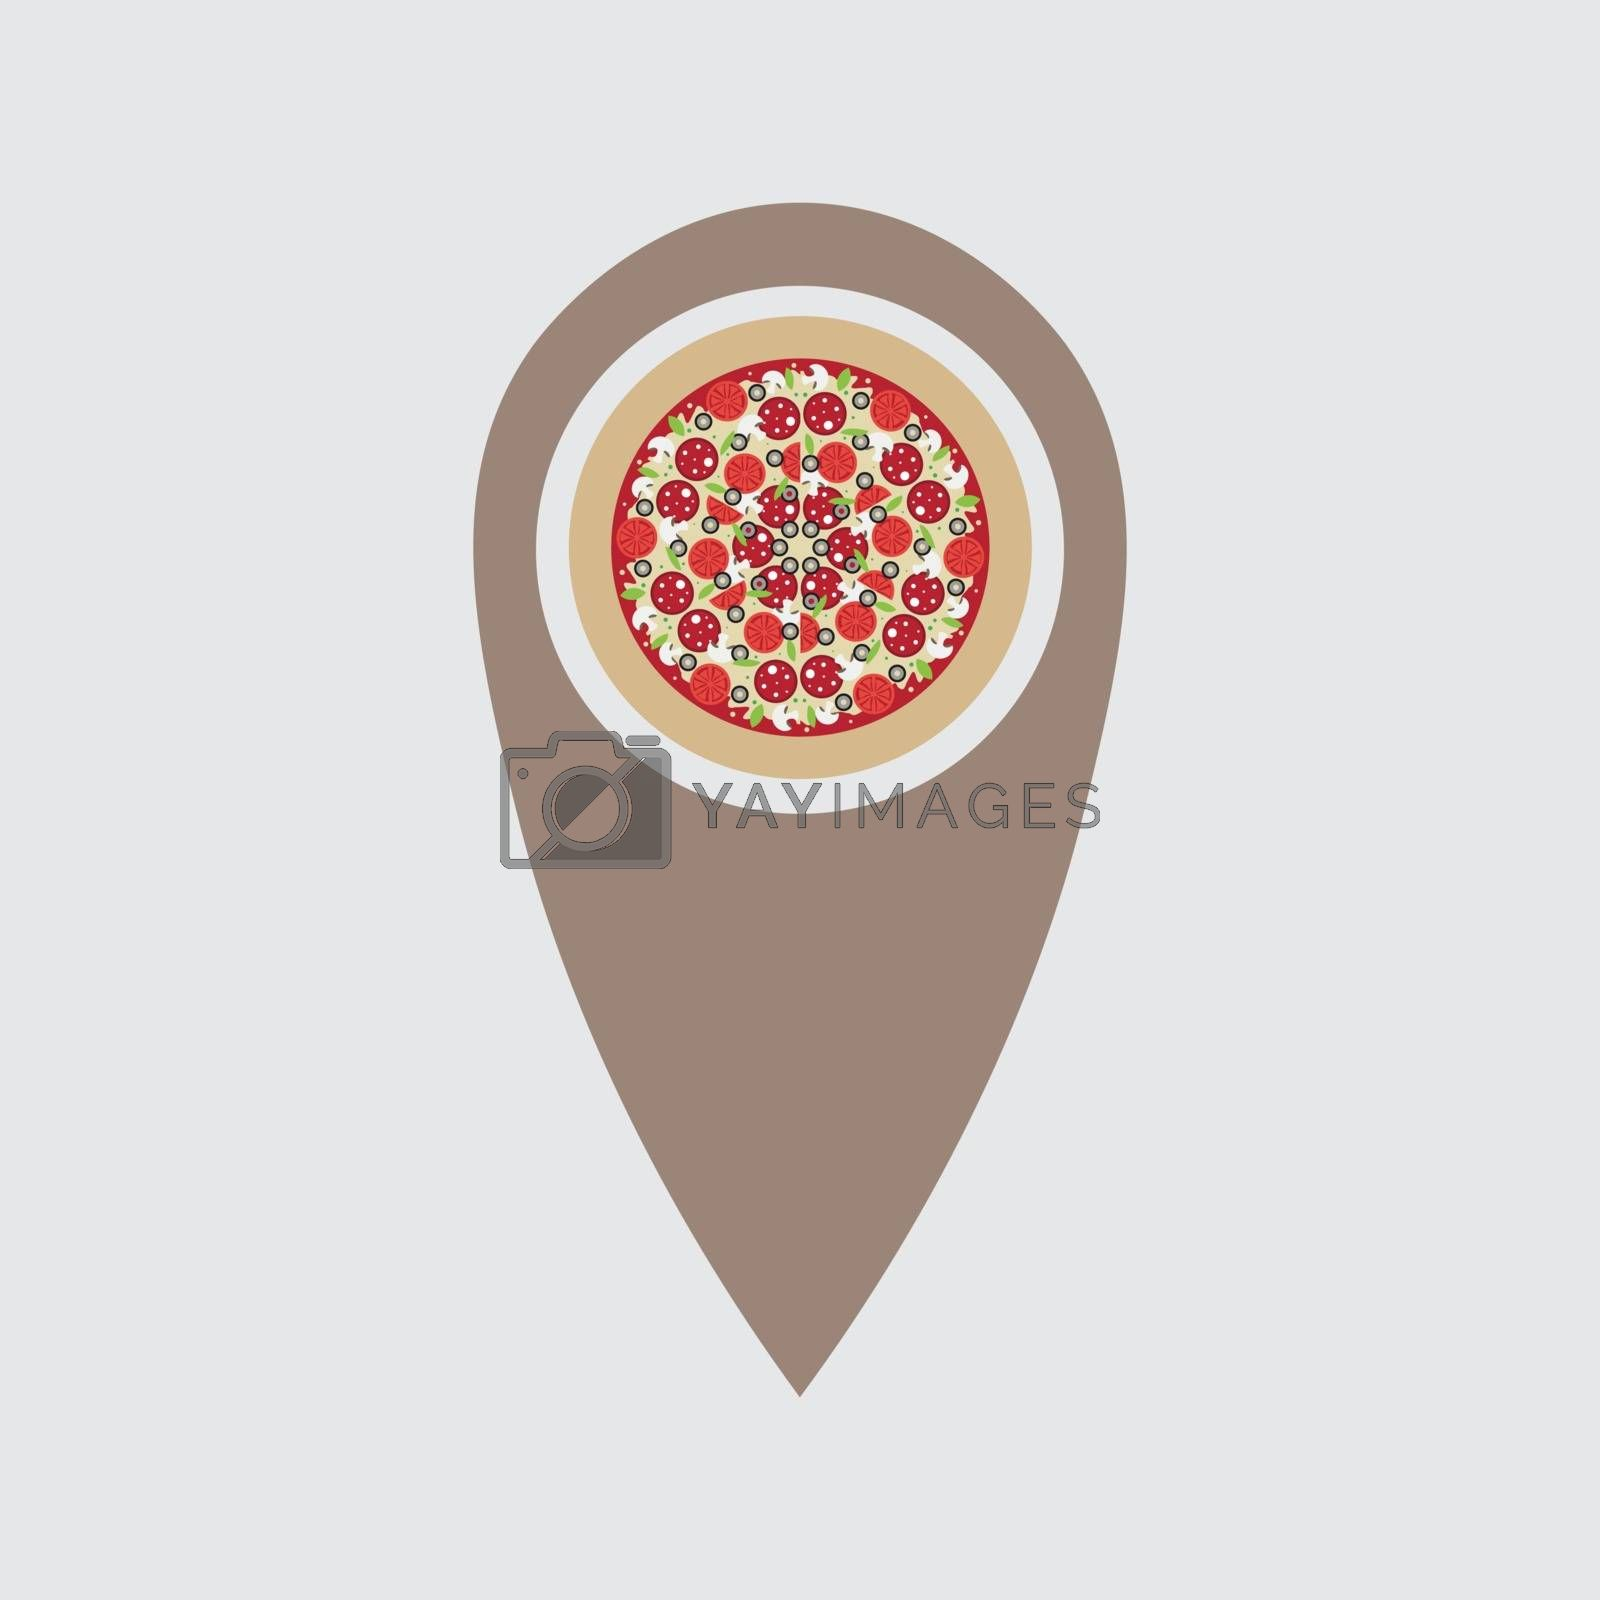 Pizza location.. pizza symbol pointing at a map. Italian food restaurant sign. by Musjaka0